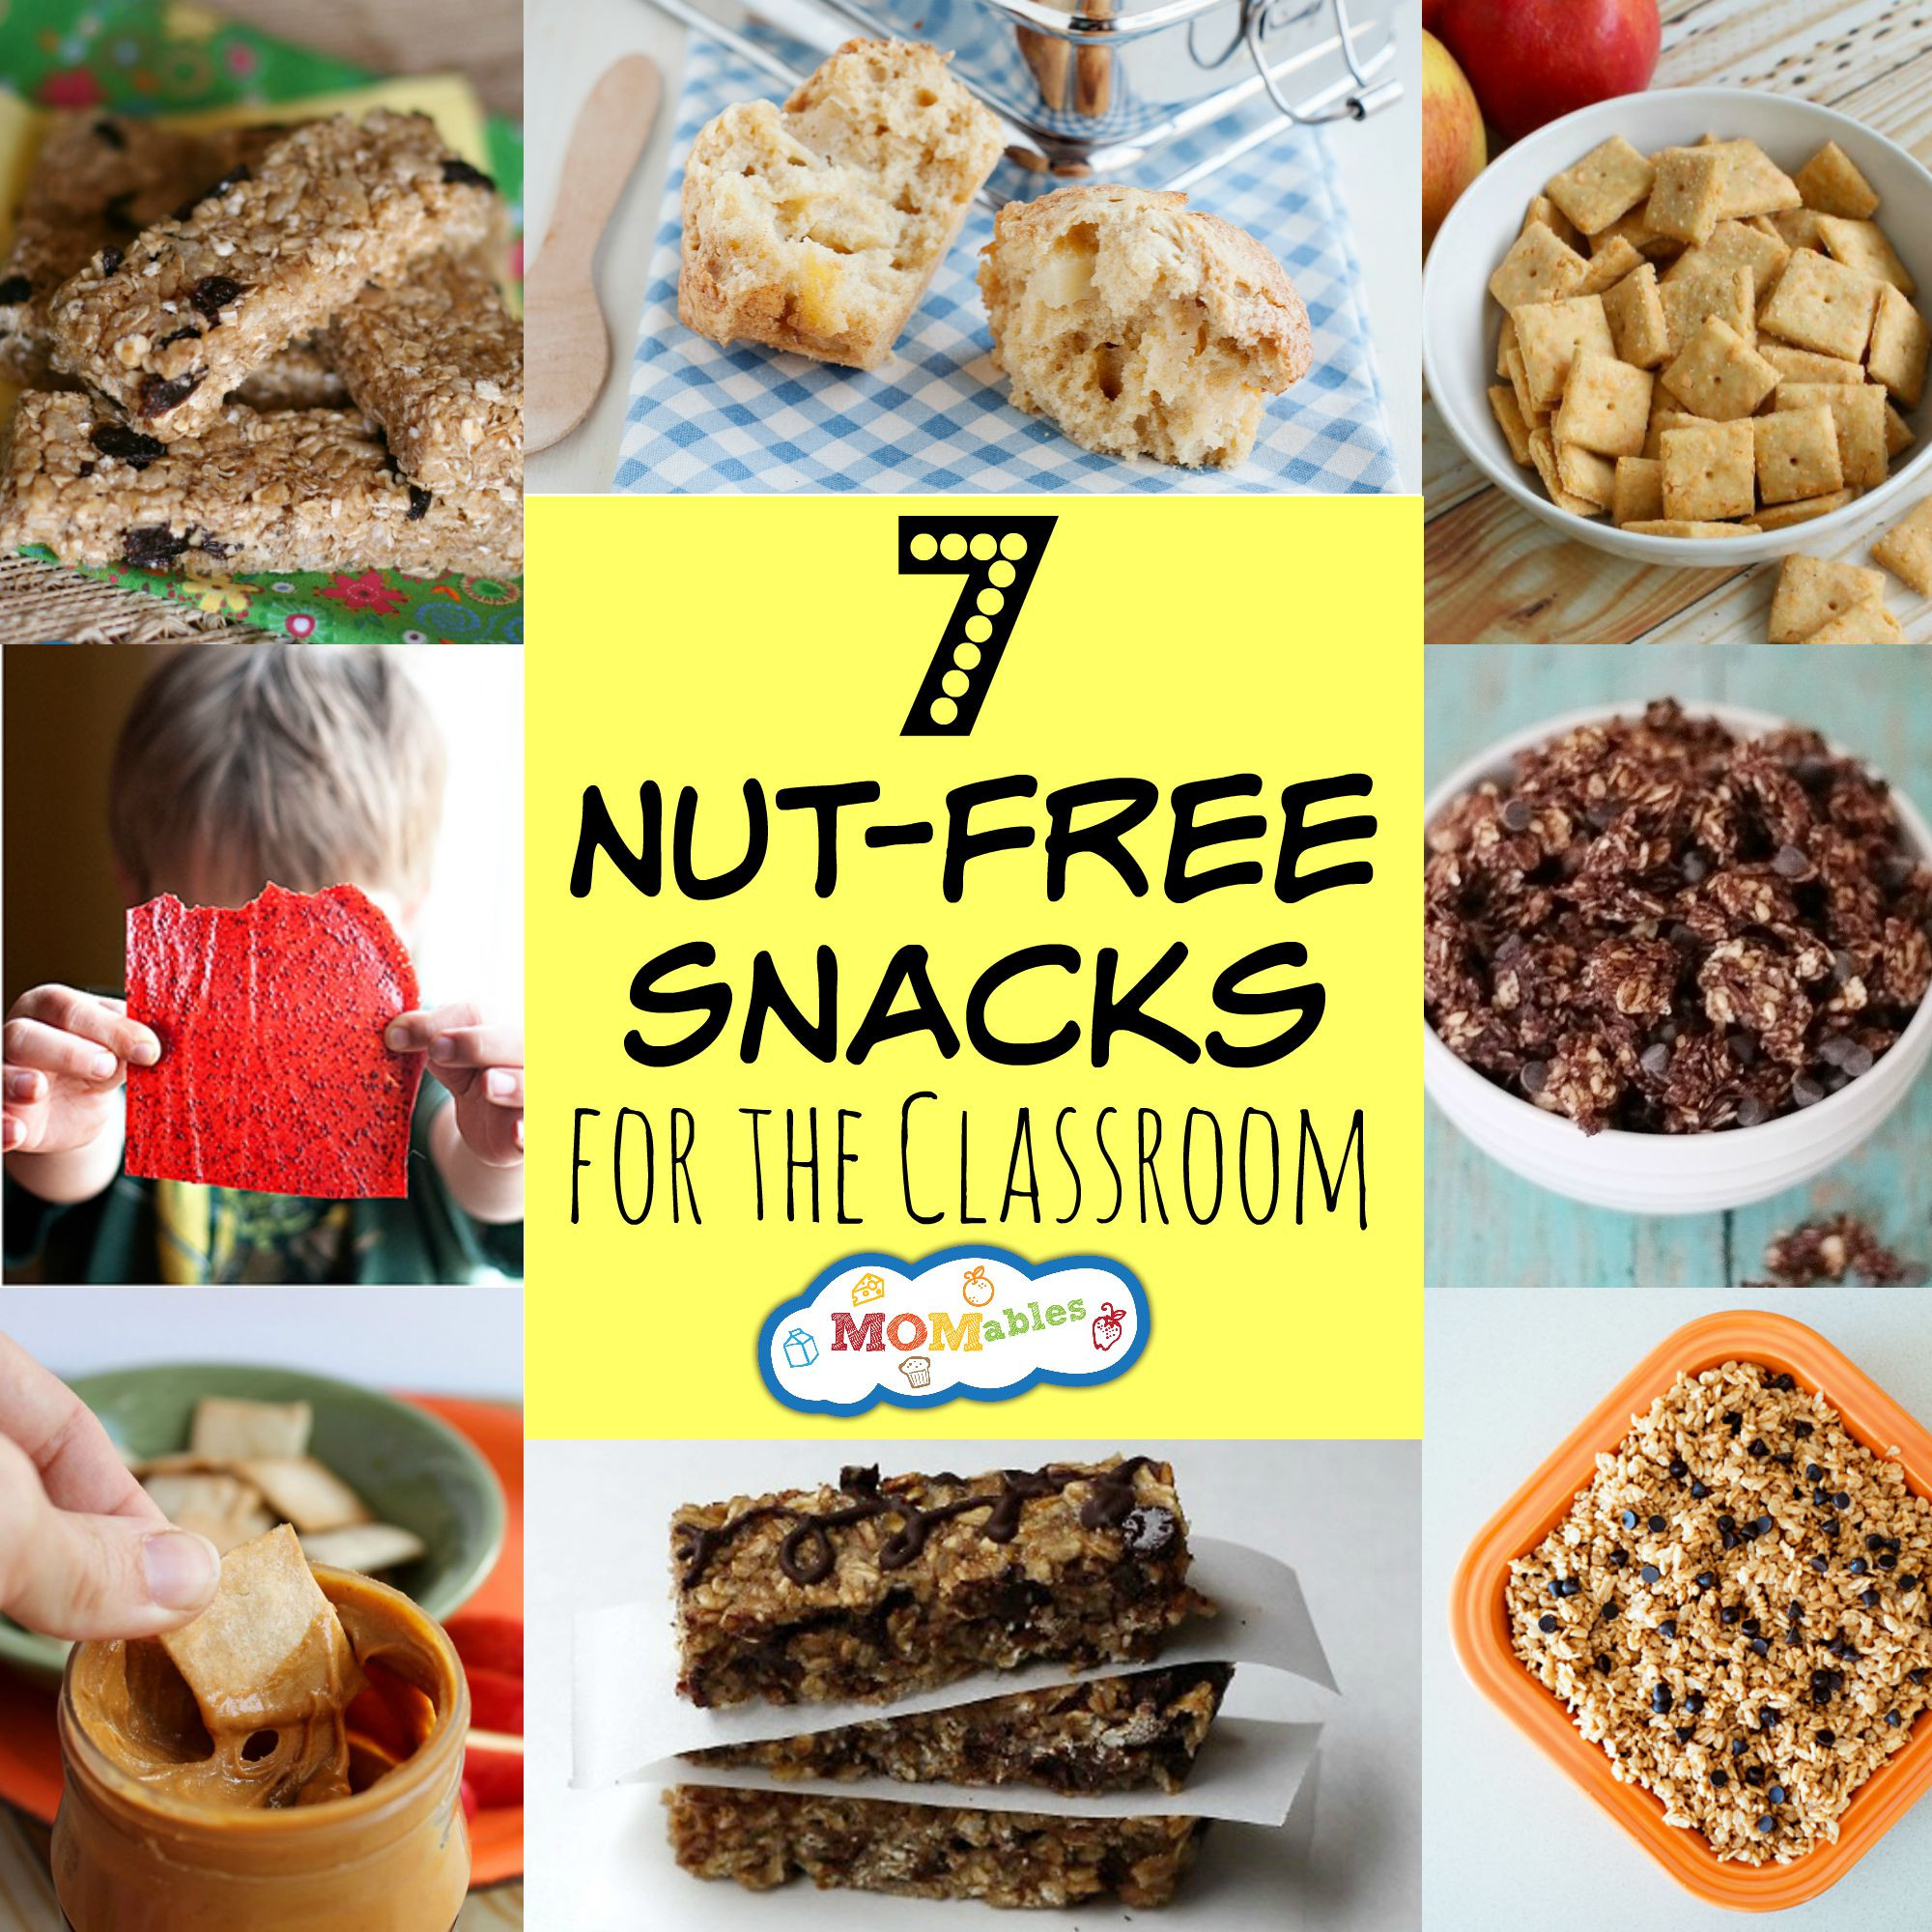 Healthy Class Snacks  7 Nut Free Snacks for the Classroom & Lunchbox MOMables